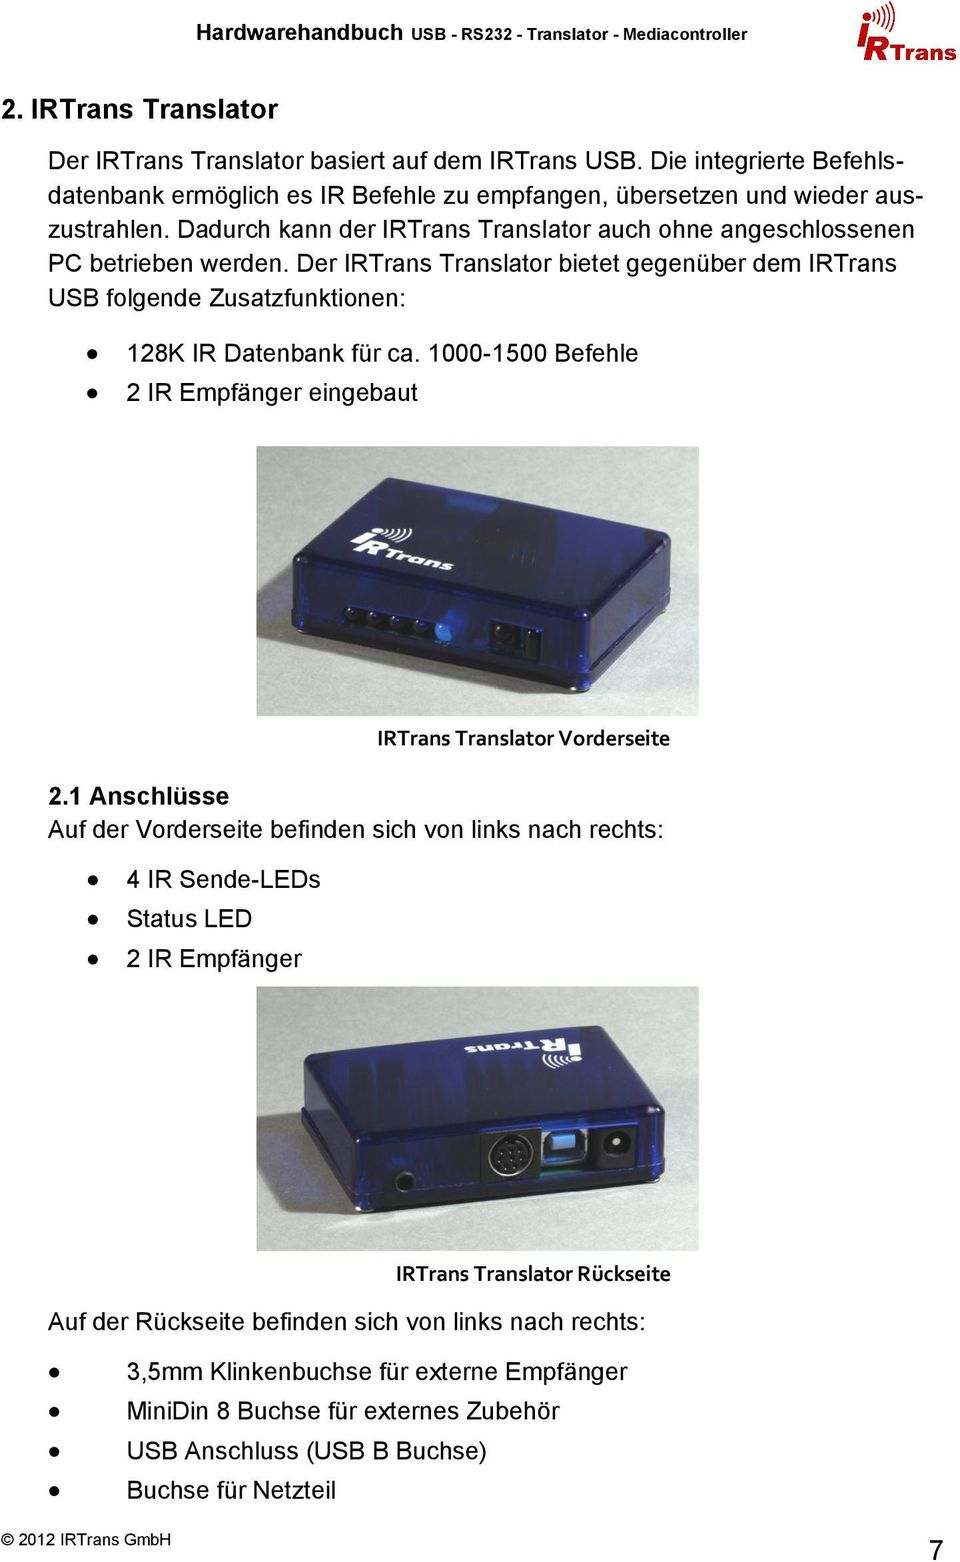 Hardwarehandbuch USB - RS232 - Mediacontroller - Translator - PDF